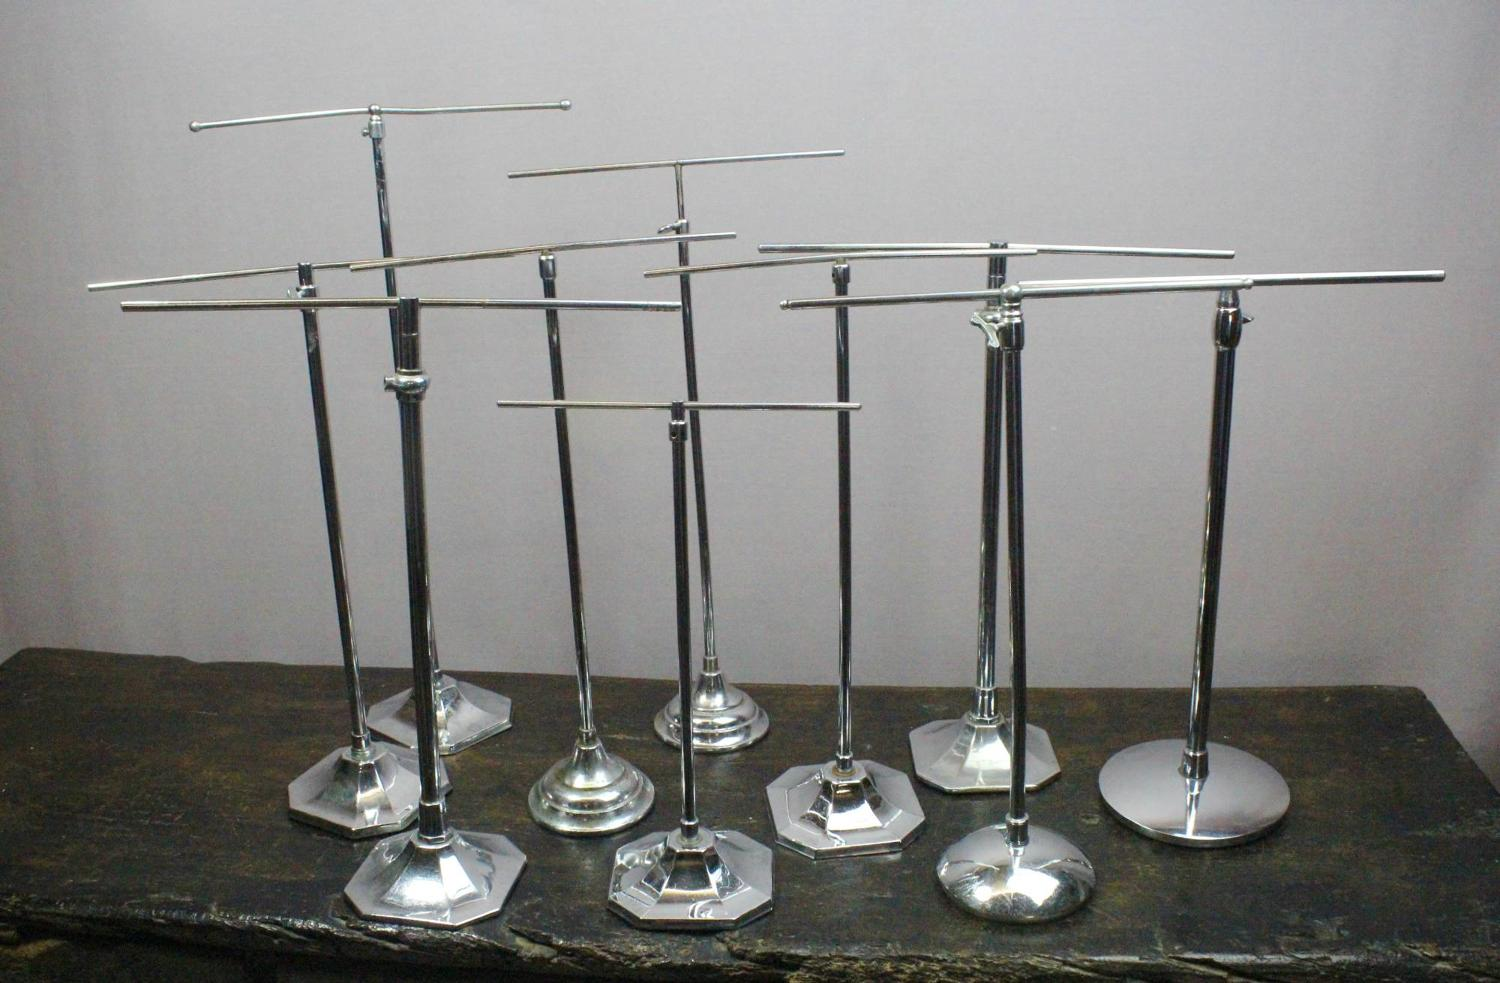 Art Deco Telescopic Chrome Shop Display Stands